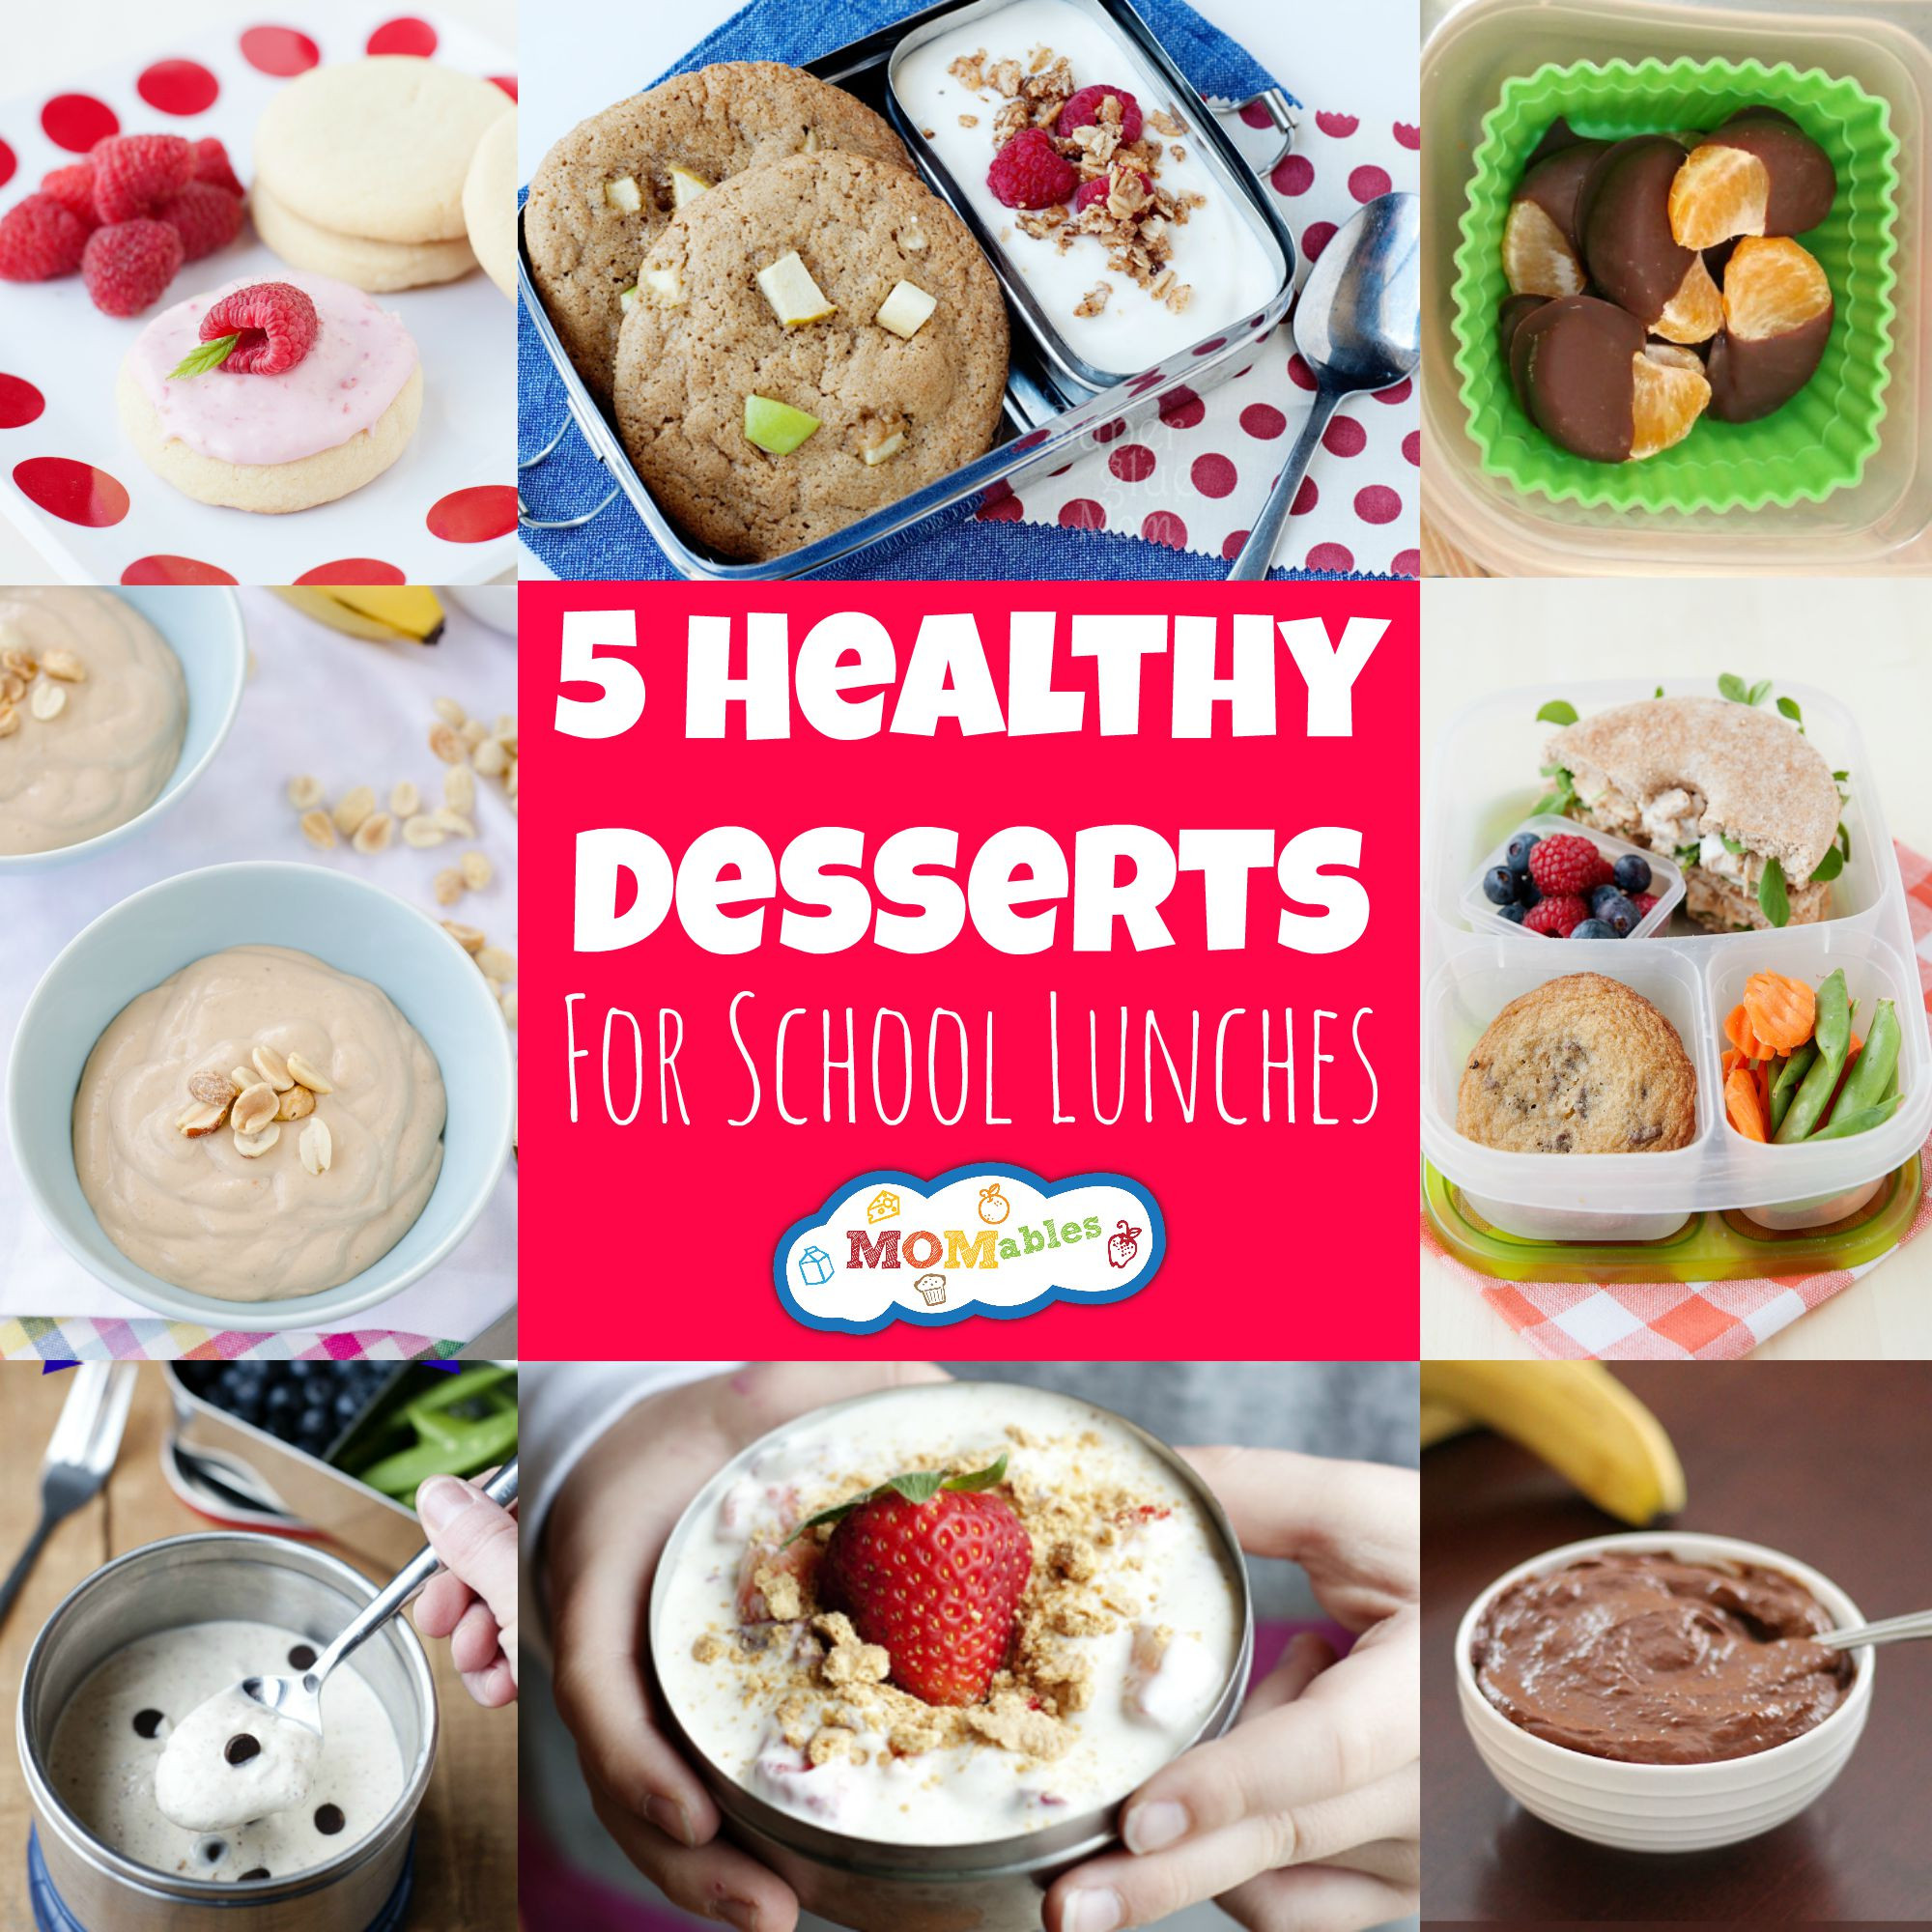 Healthy Sweet Desserts  5 Healthy Desserts for School Lunches MOMables